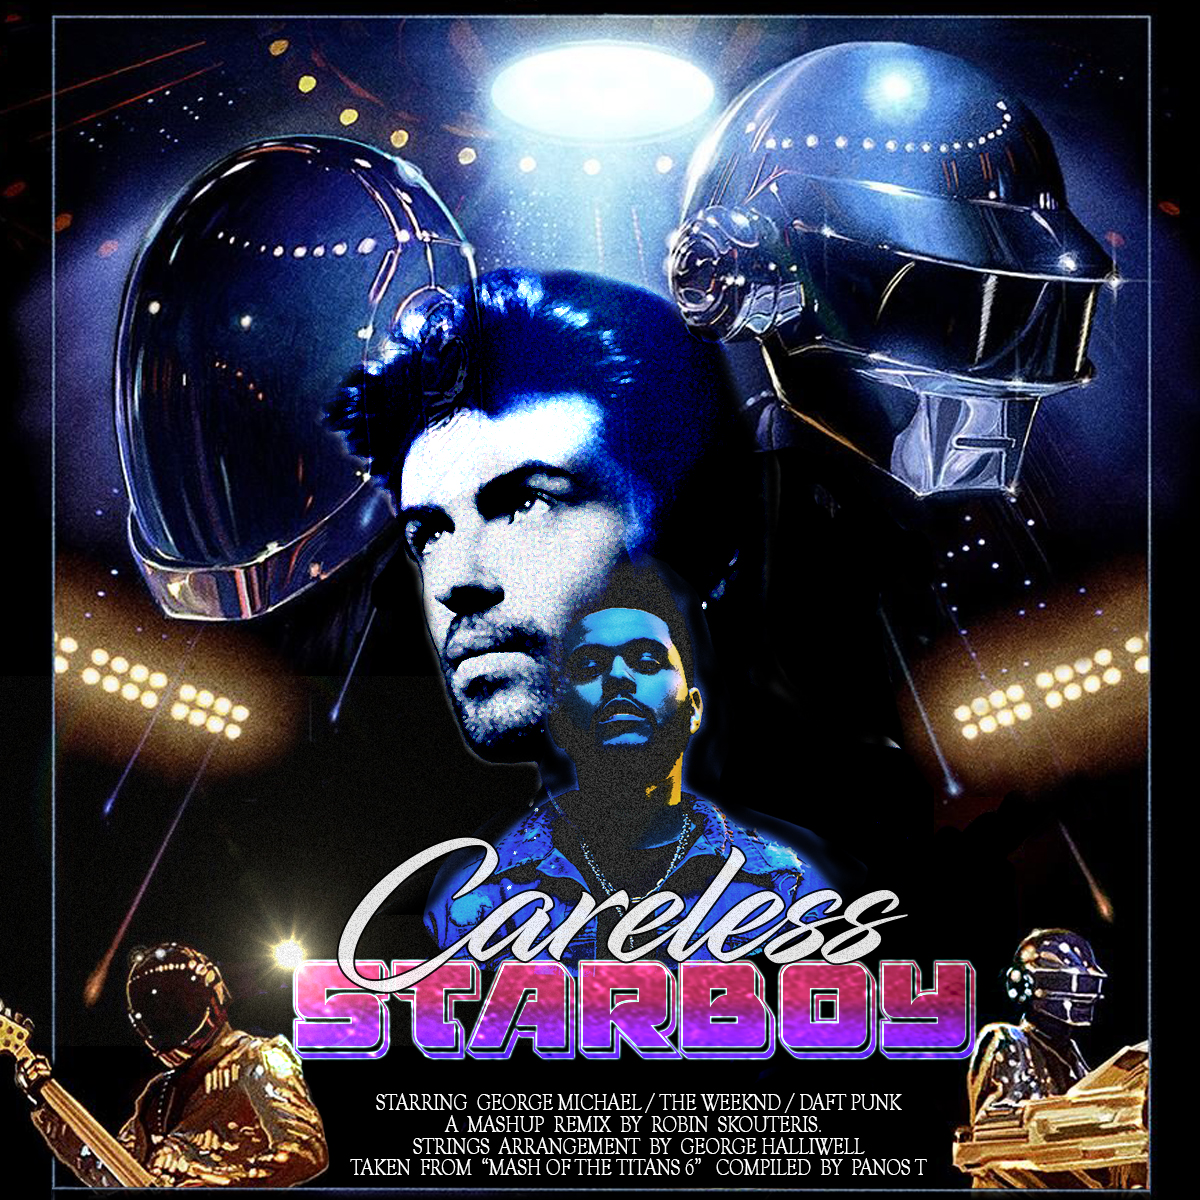 George Michael Vs Daft Punk & The Weeknd - Careless Starboy  (Robin Skouteris Mix)